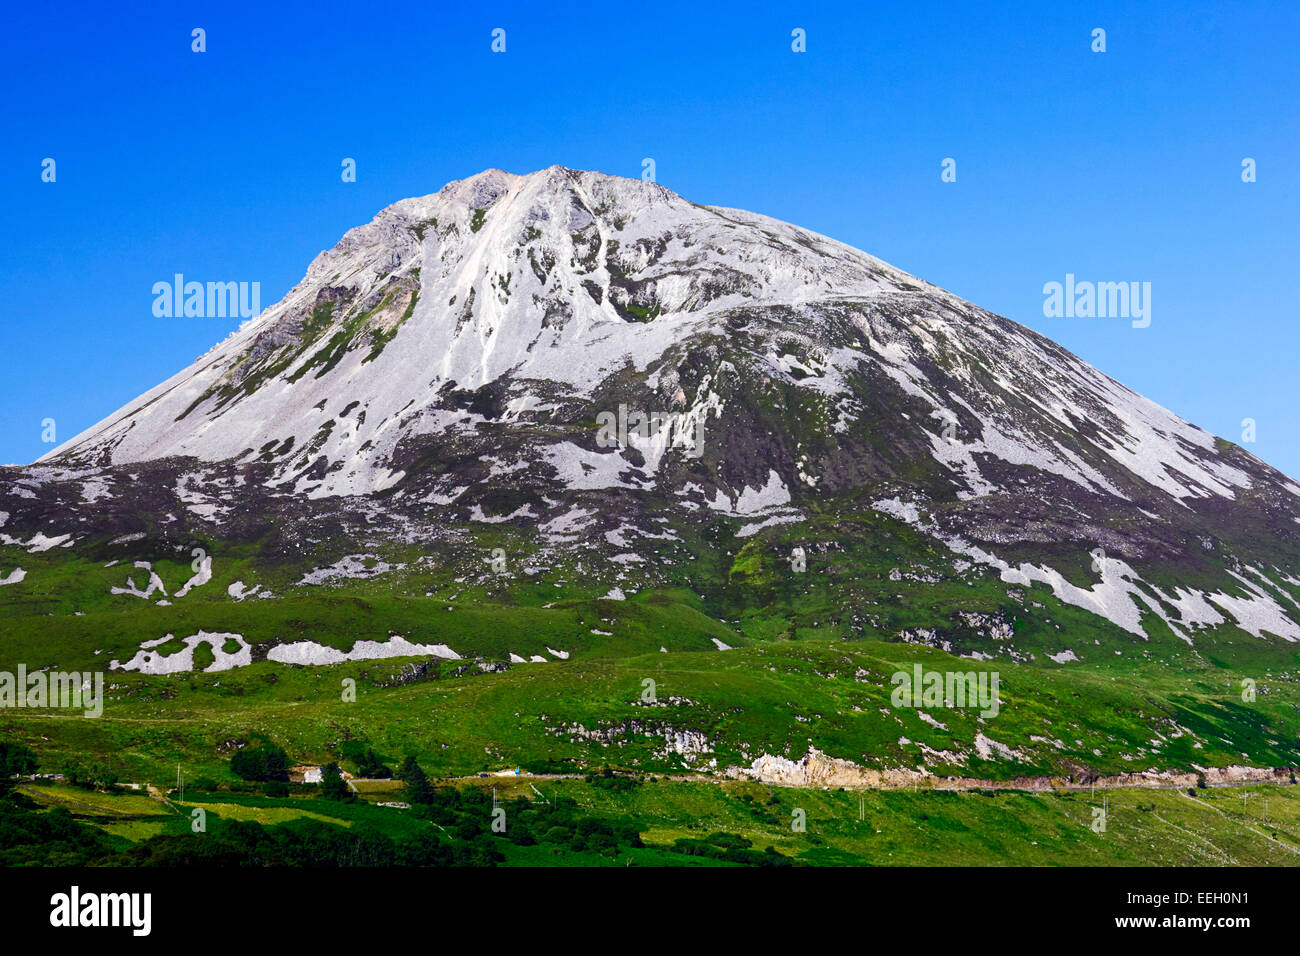 Errigal mountain in County Donegal Ireland - Stock Image